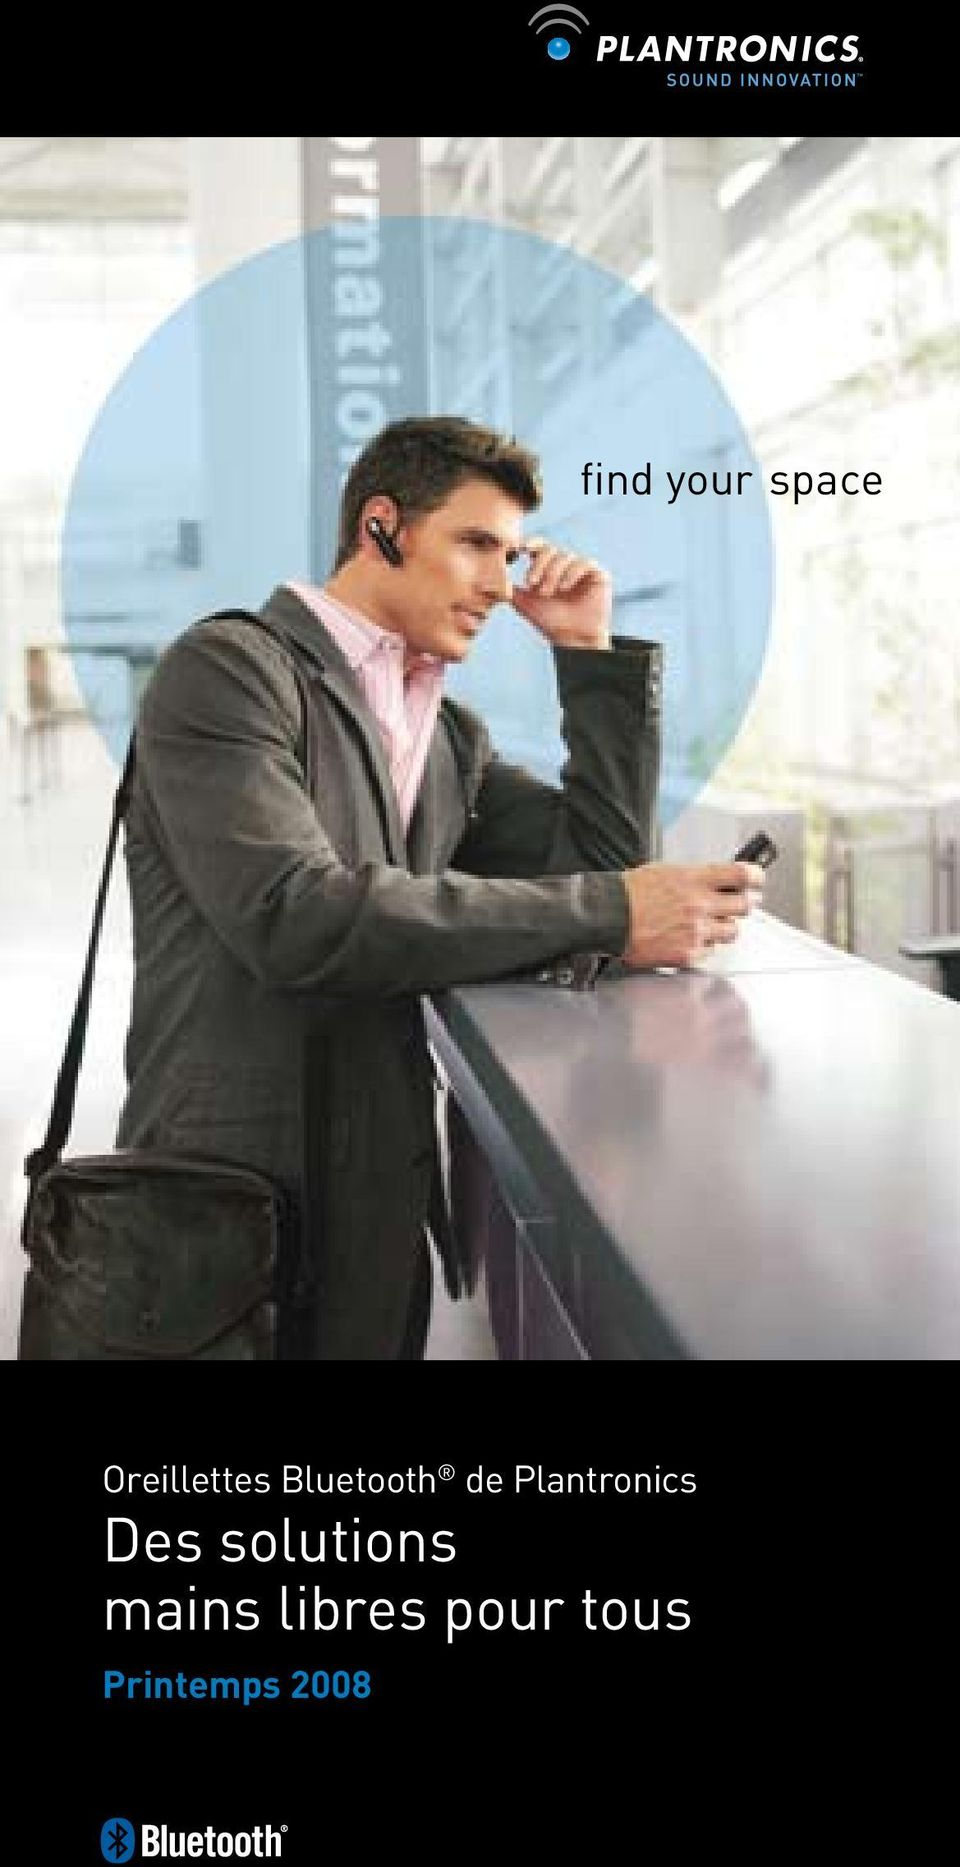 Plantronics Des solutions